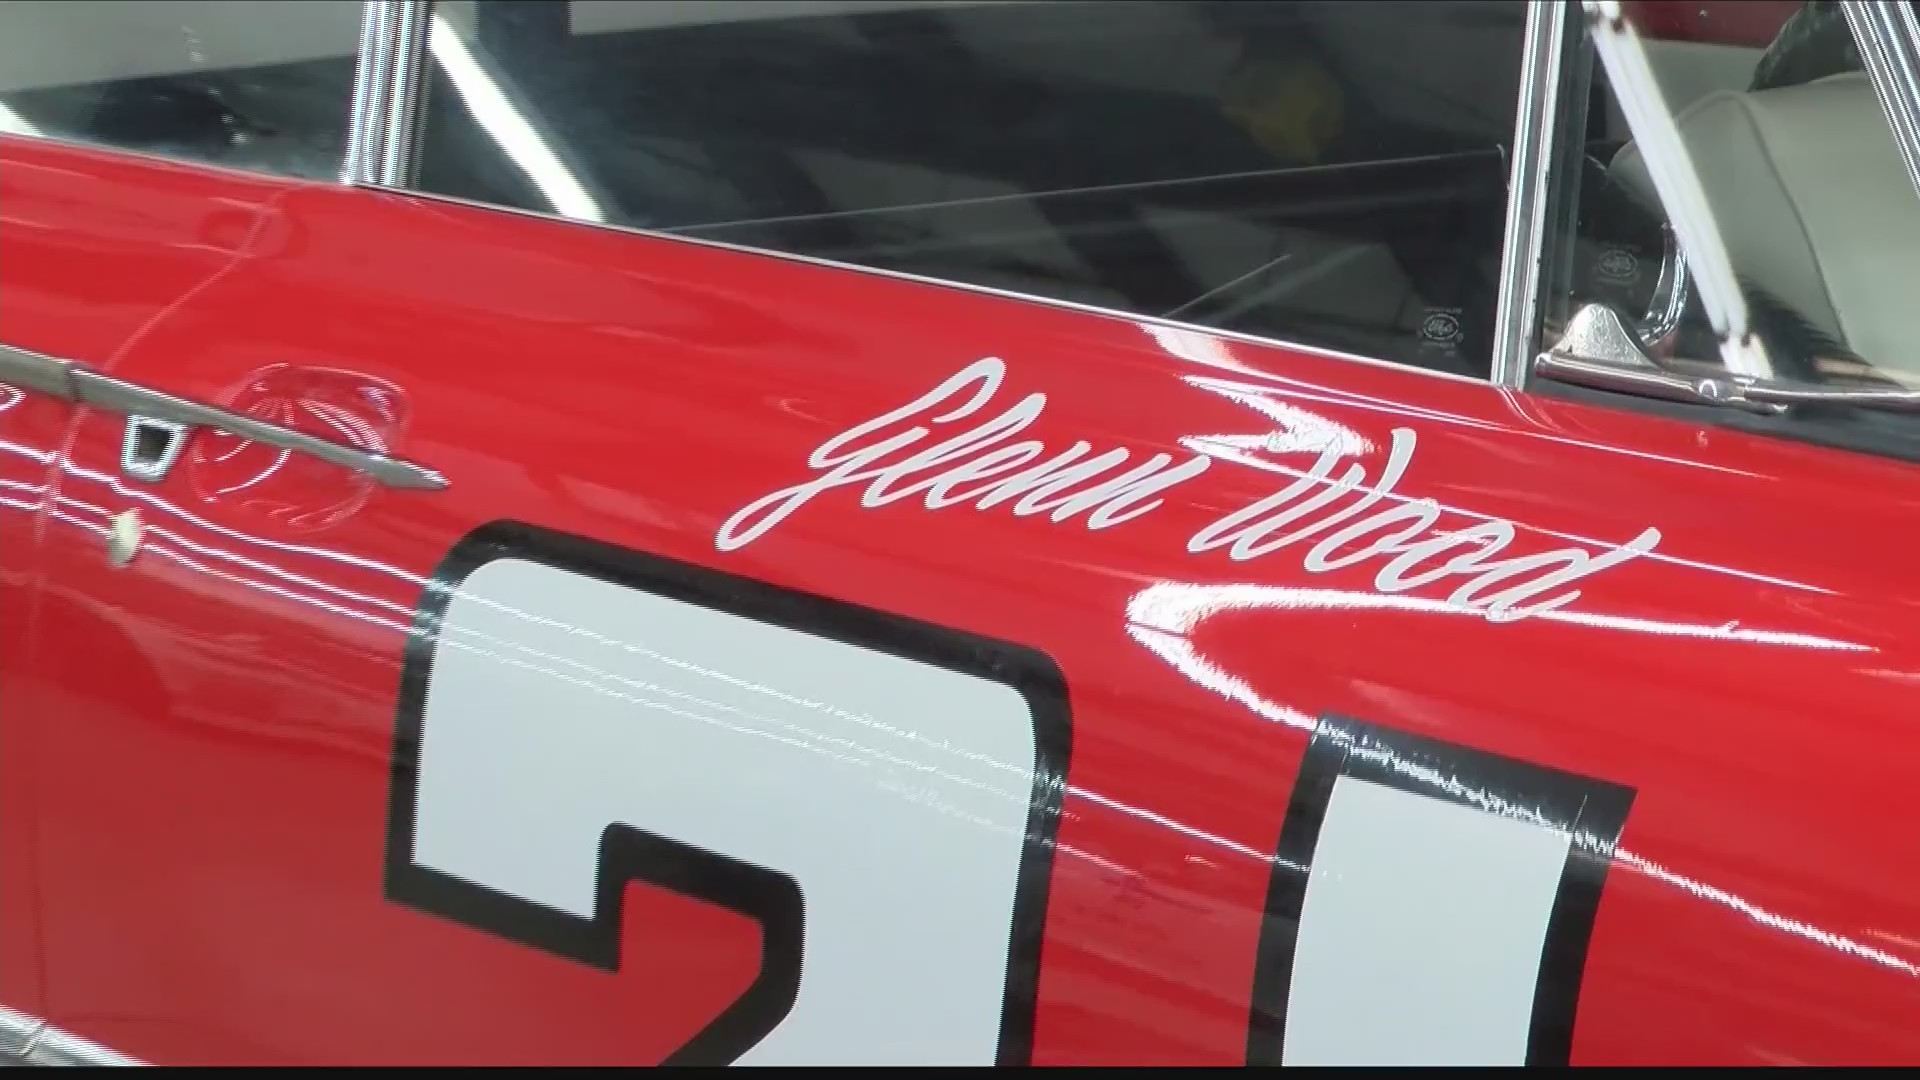 Remembering Glen Wood As Martinsville Race Approaches